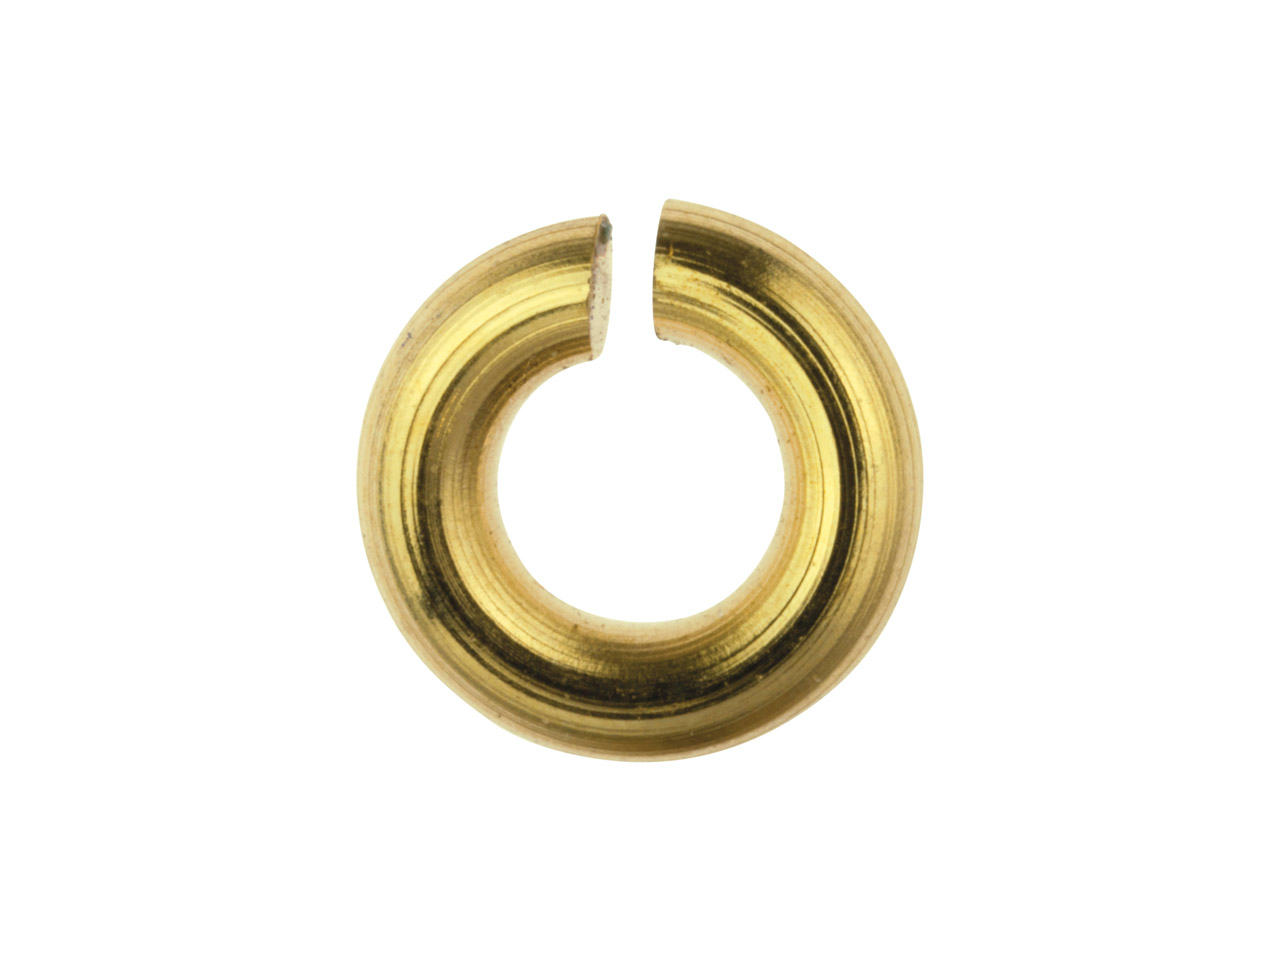 14ct Gold Filled Open Jump Ring 4mm Pack of 10